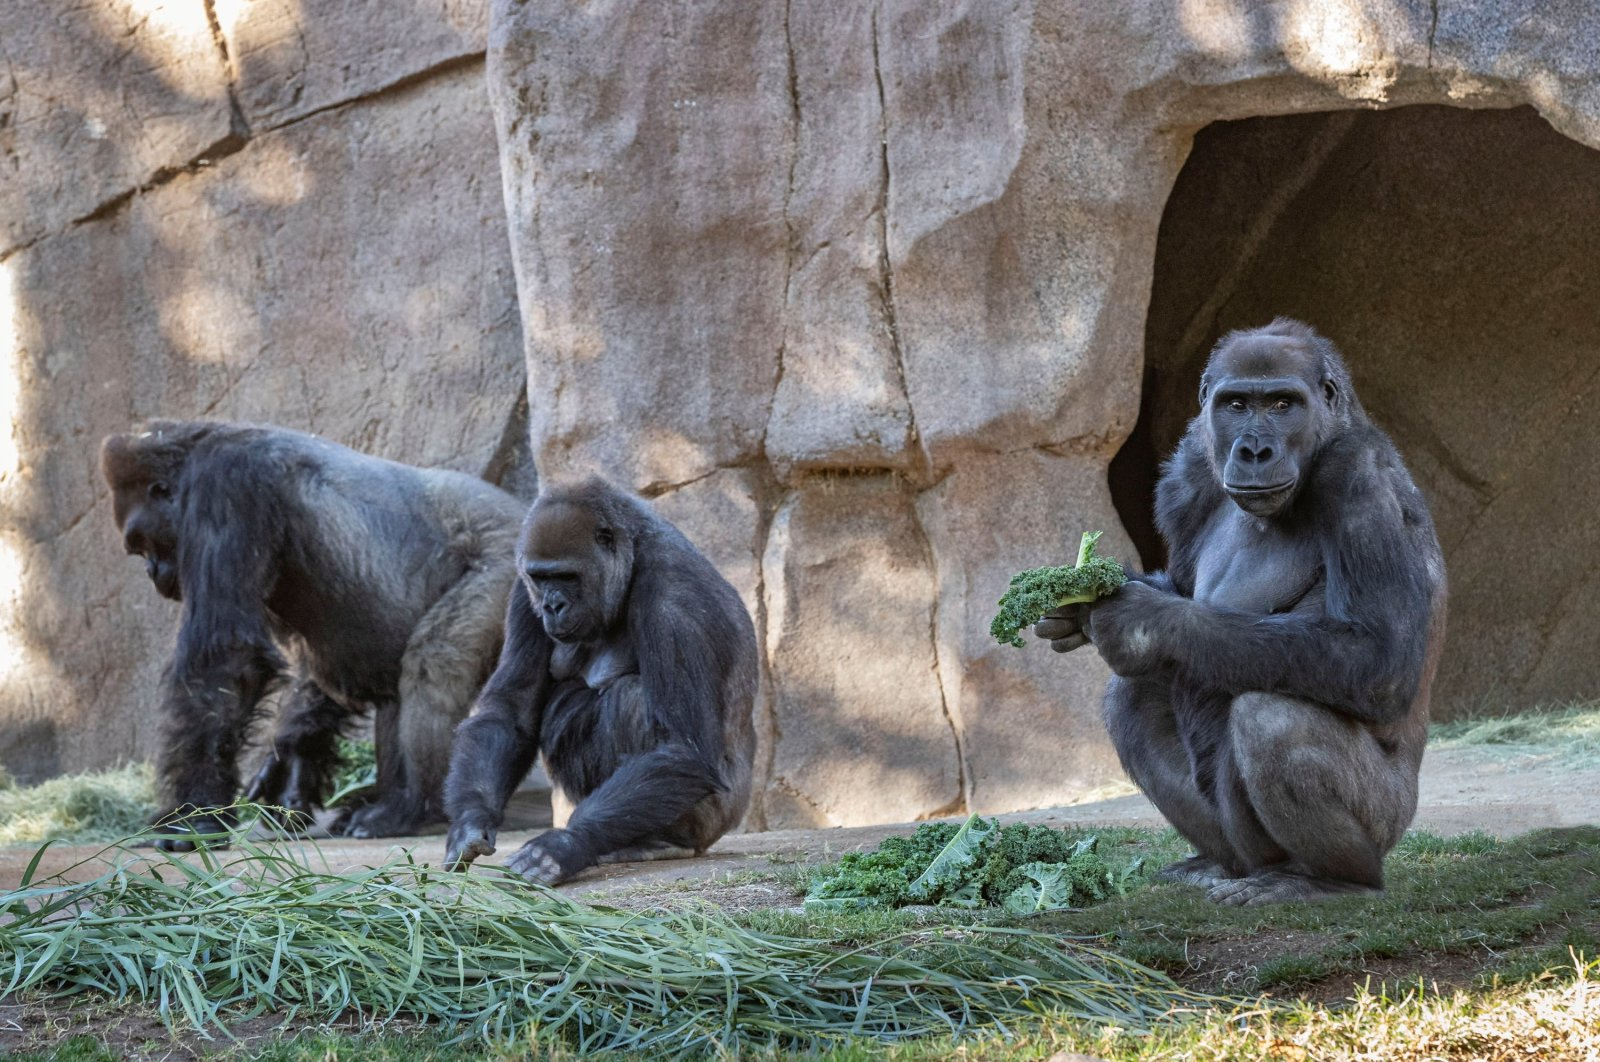 Gorillas sit after two of their troop tested positive for COVID-19 after falling ill, and a third gorilla appears also to be symptomatic, at the San Diego Zoo Safari Park in San Diego, California, U.S. on Jan. 10, 2021. (Reuters Photo)